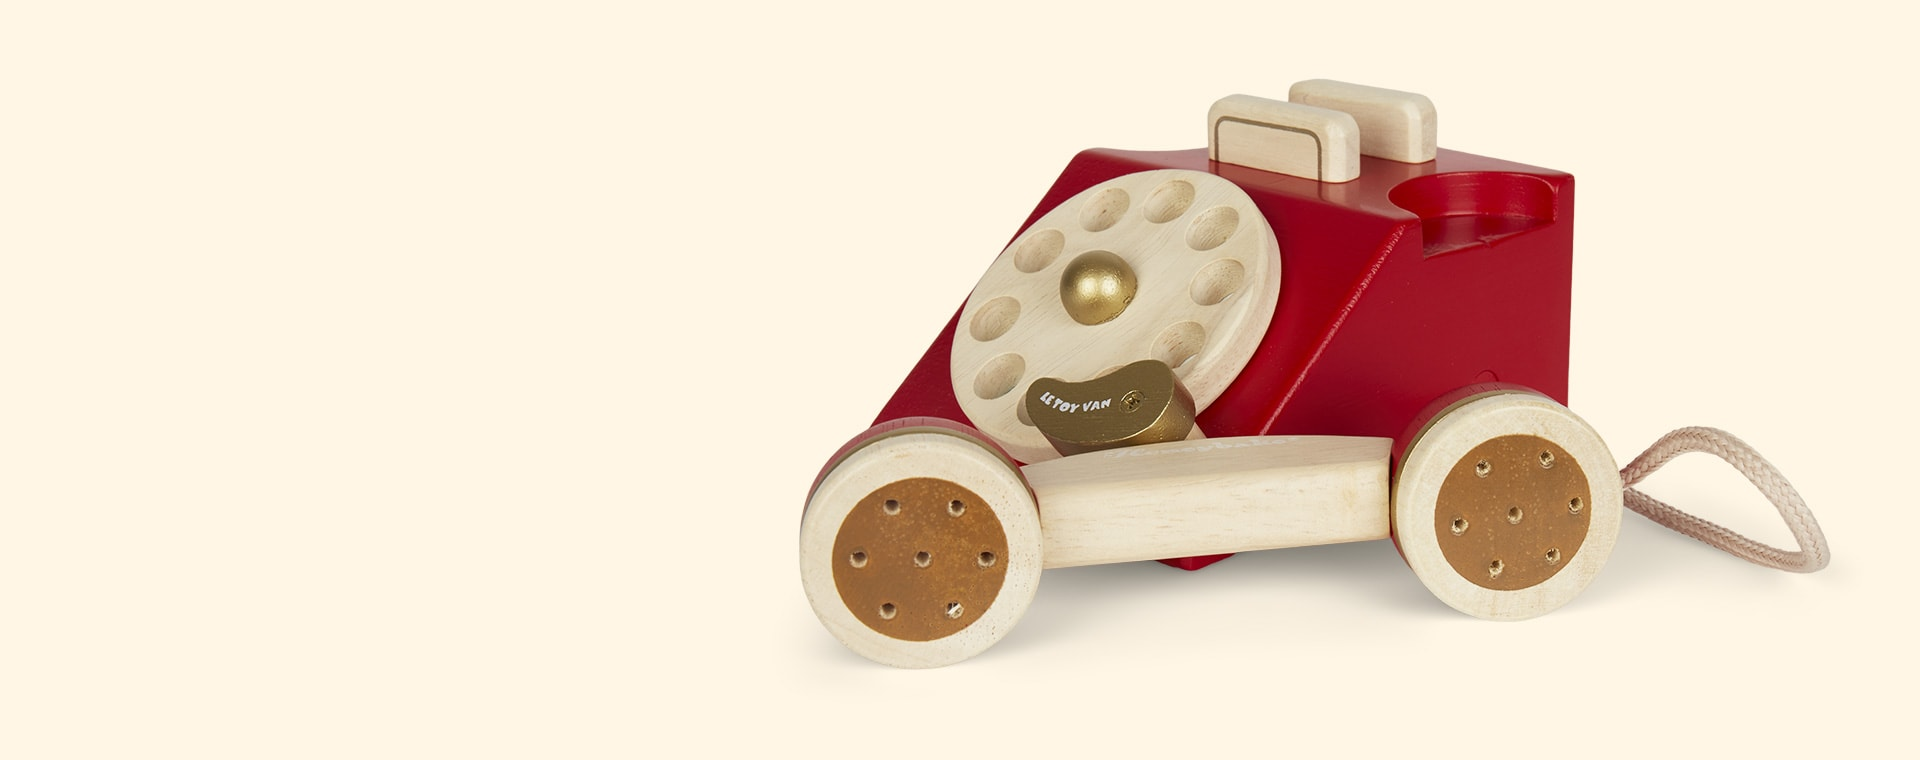 Red Le Toy Van Vintage Phone